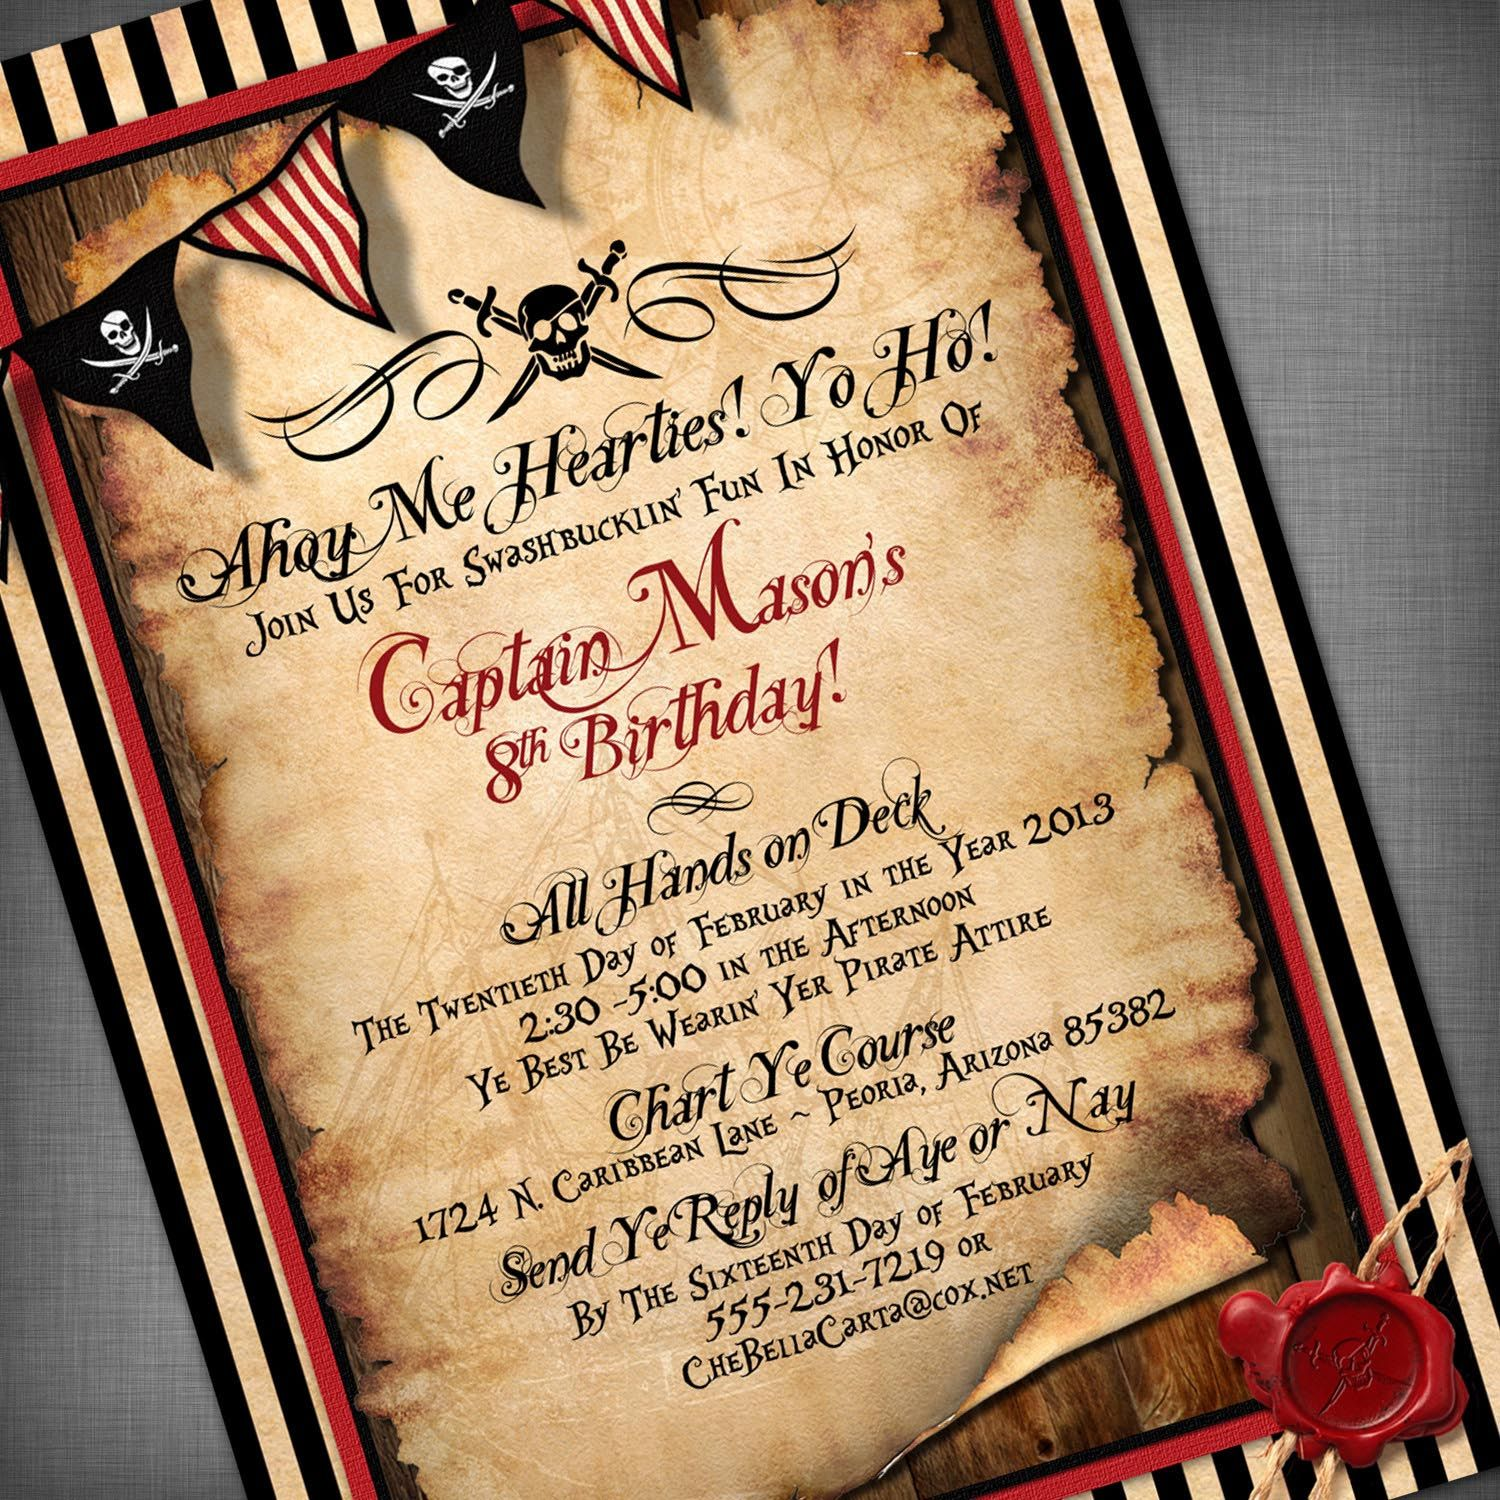 Pirate party invitations template pinteres pirate party invitations template more stopboris Choice Image